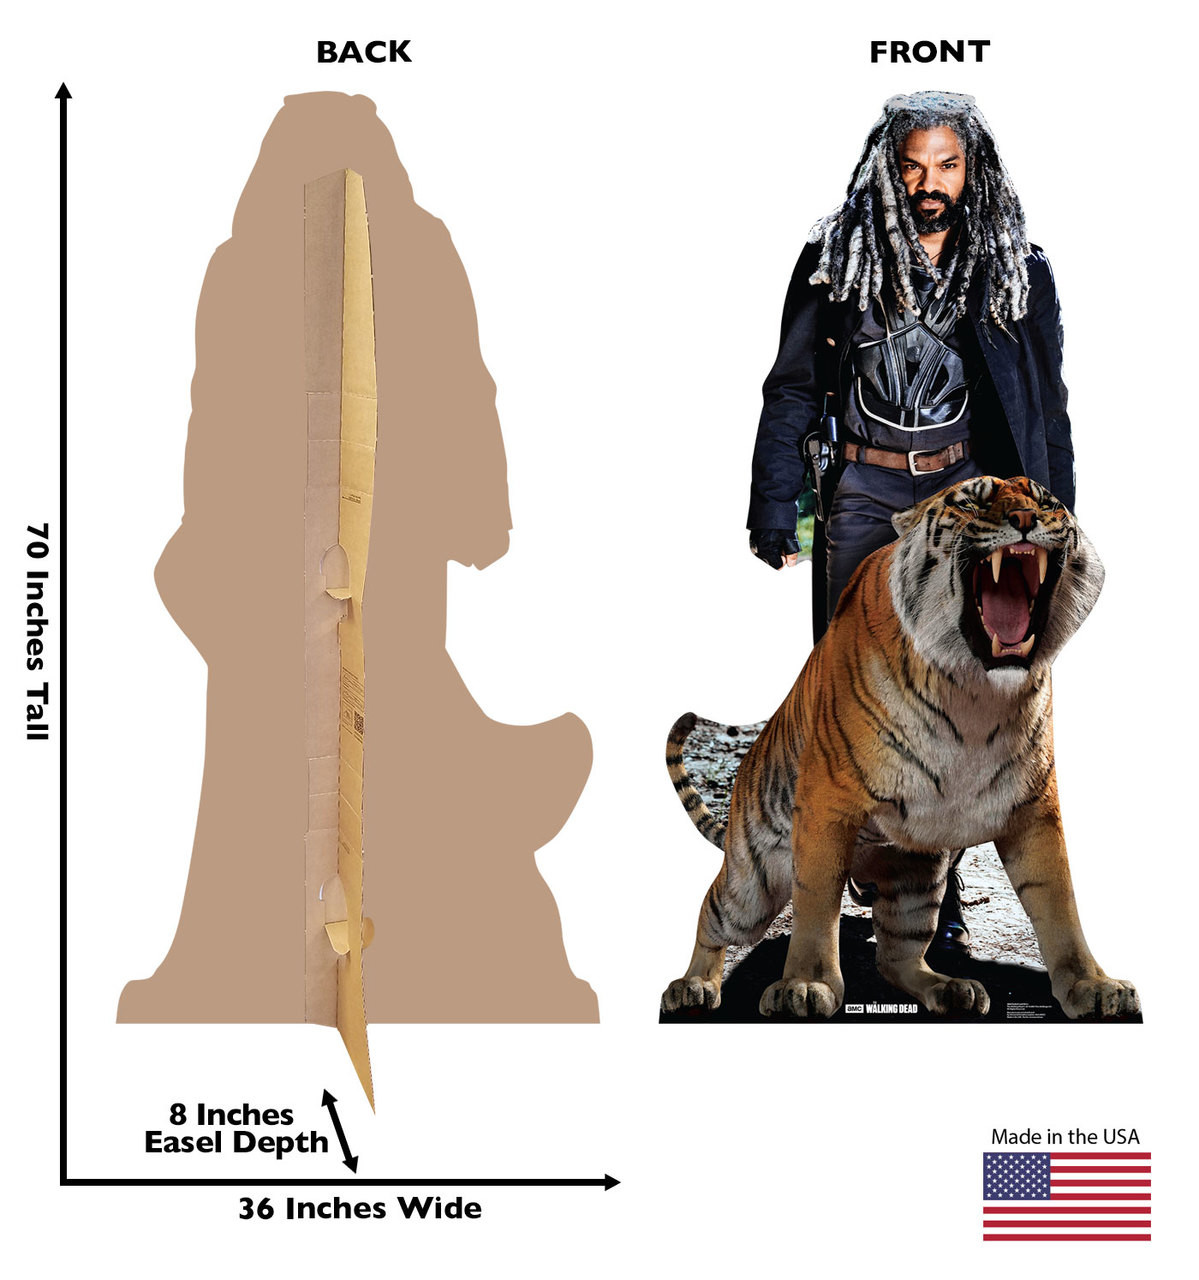 Ezekiel and Shiva Cardboard Cutout front and back view with dimensions